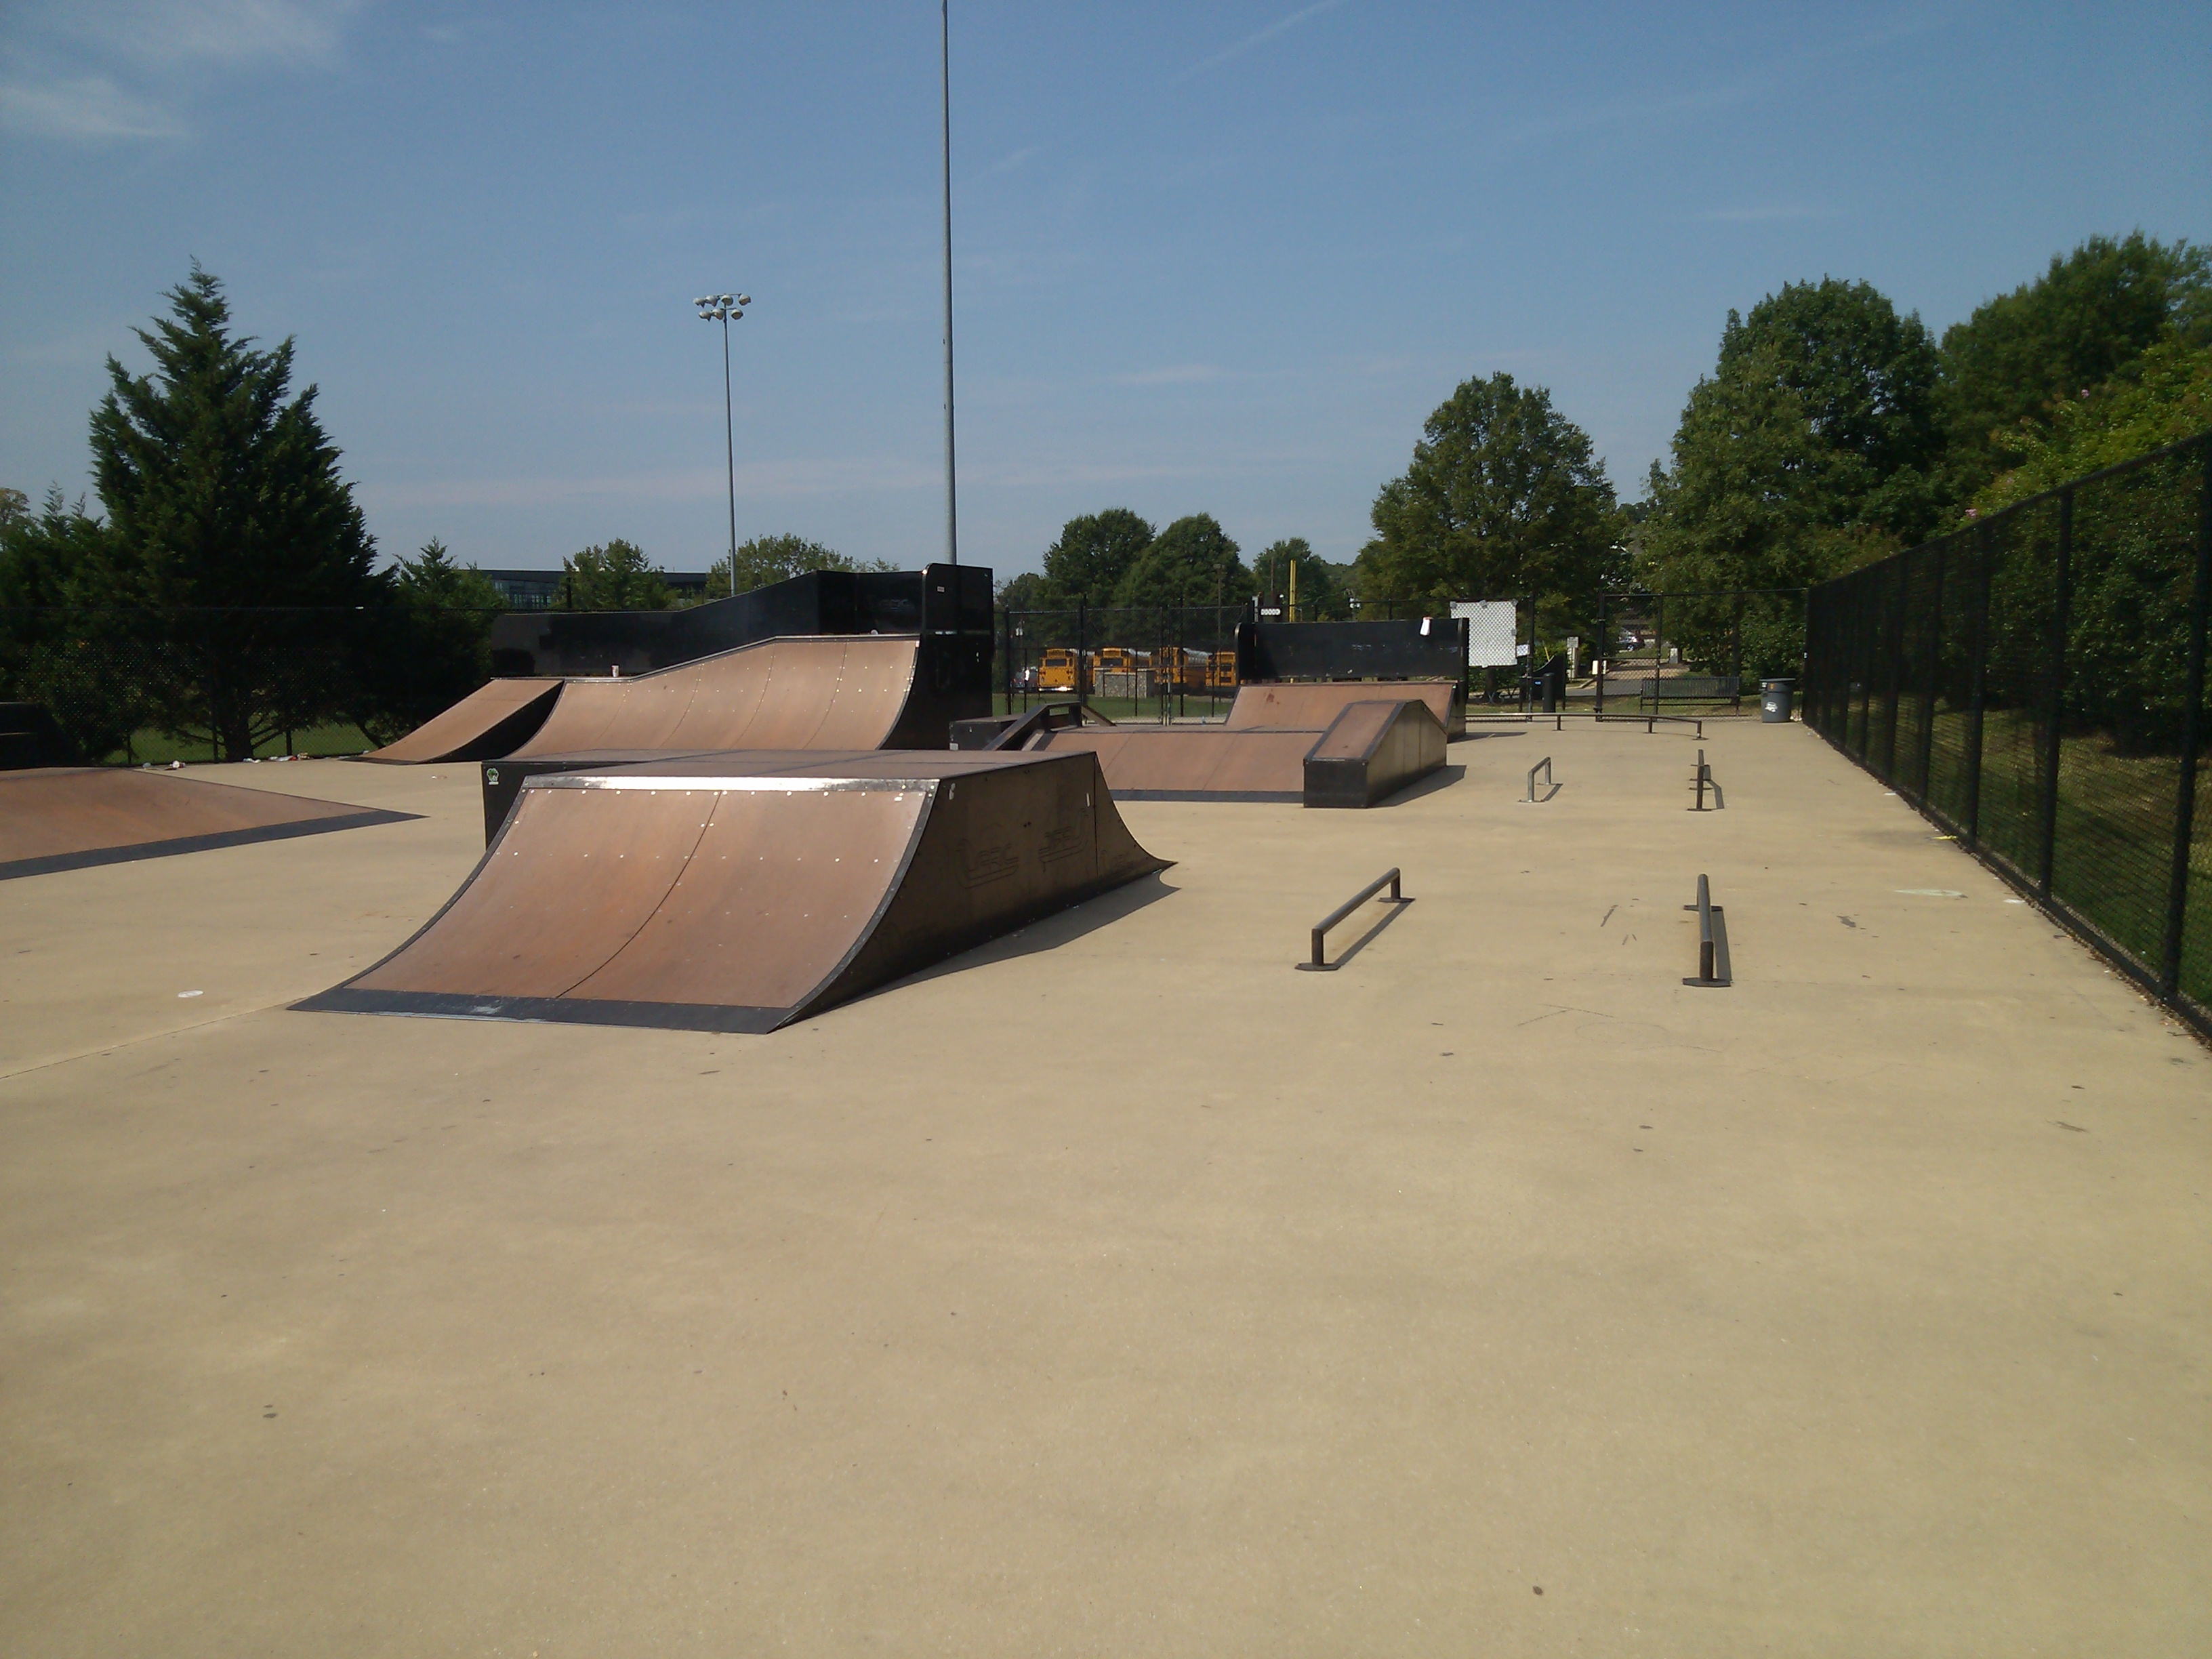 A skate park in Alexandria in the summer